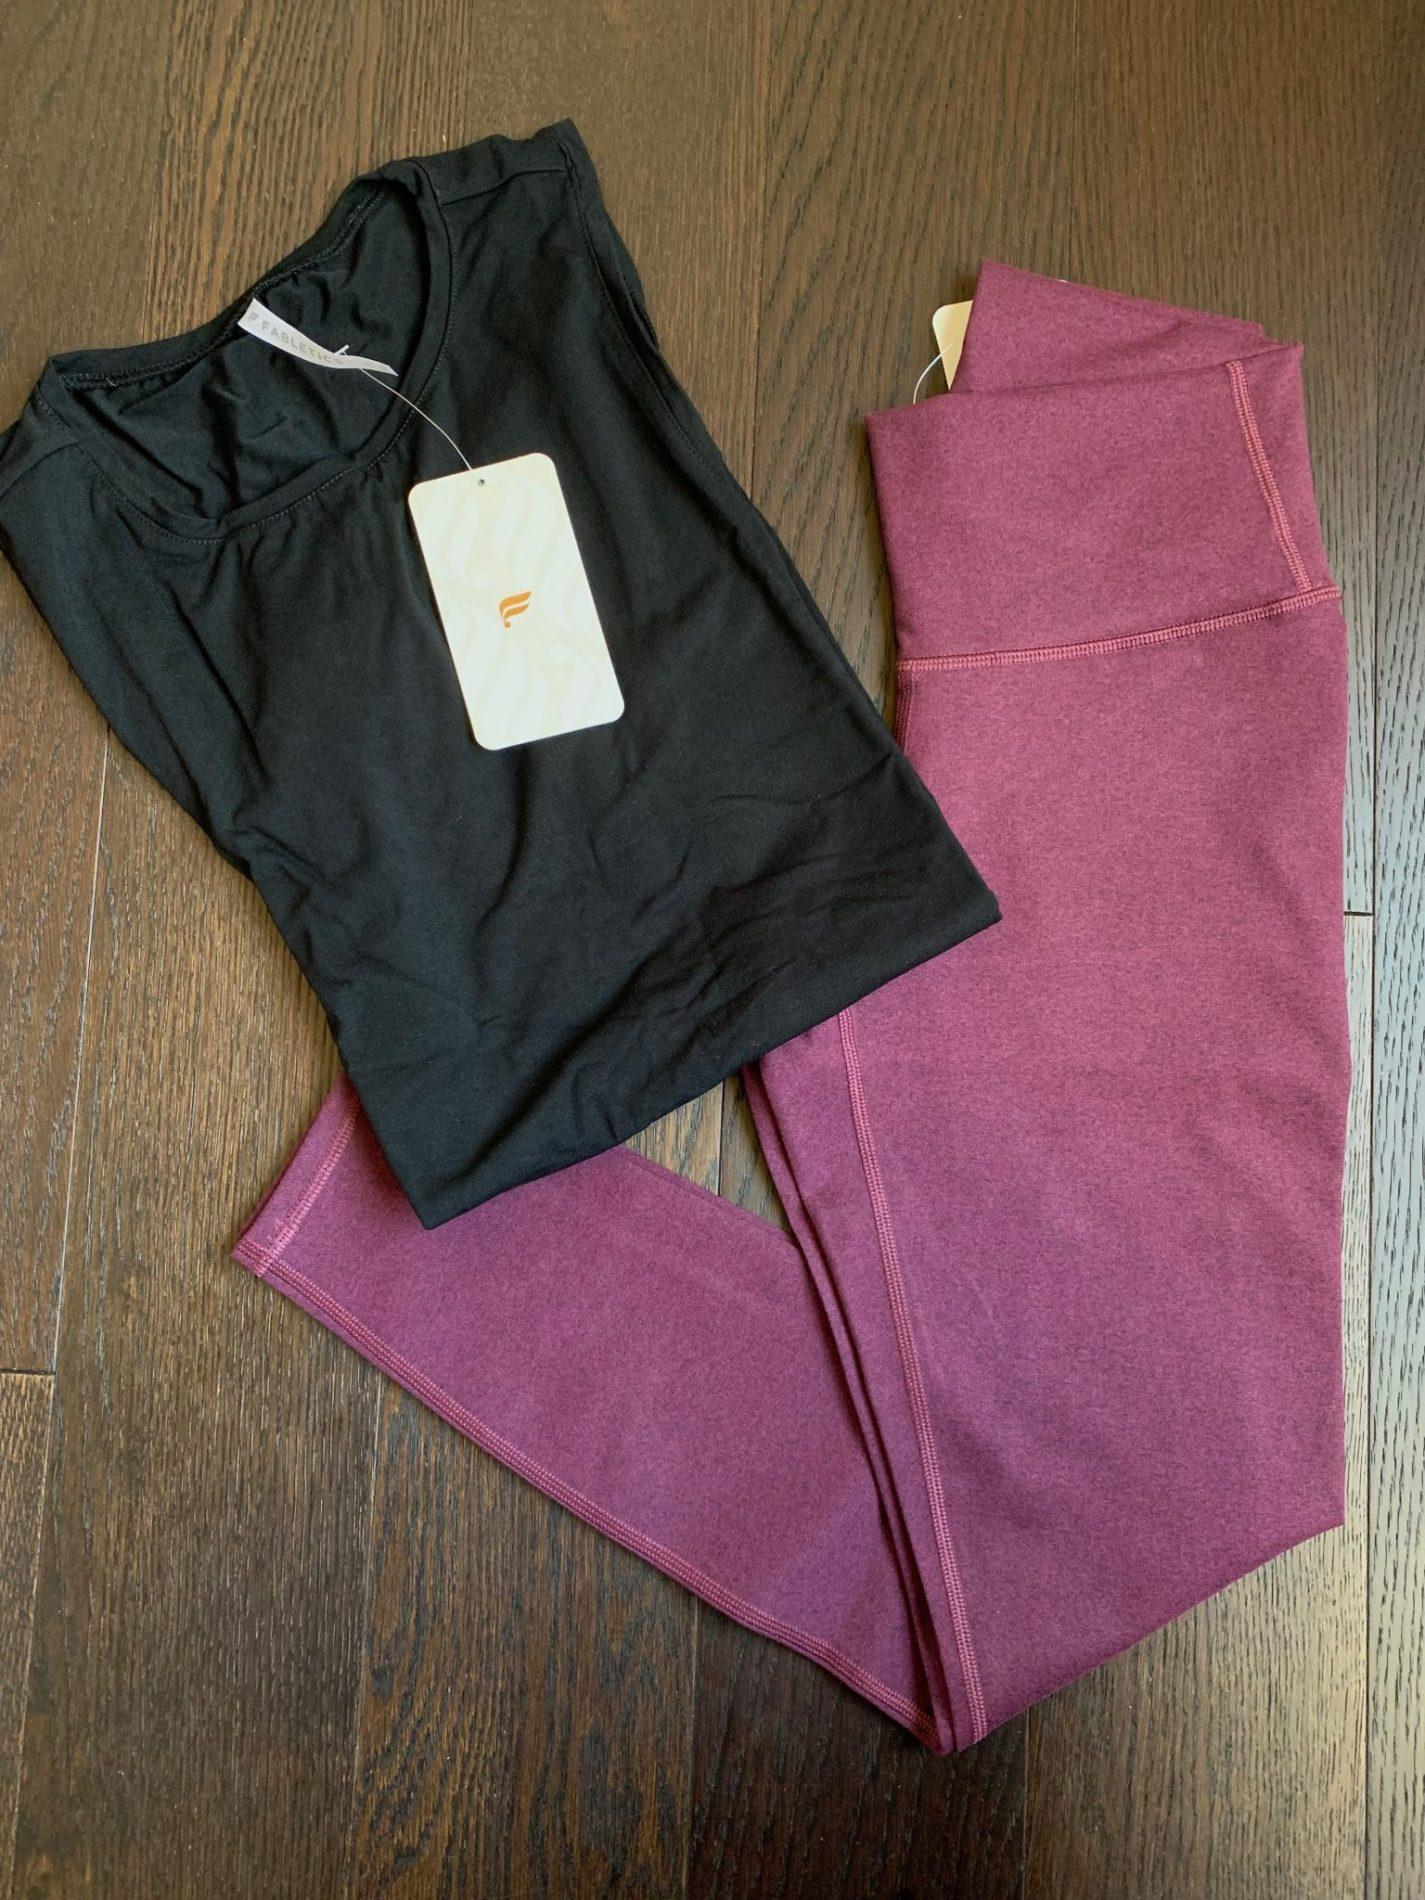 Fabletics Subscription Review – March 2019 + 2 for $24 Leggings Offer